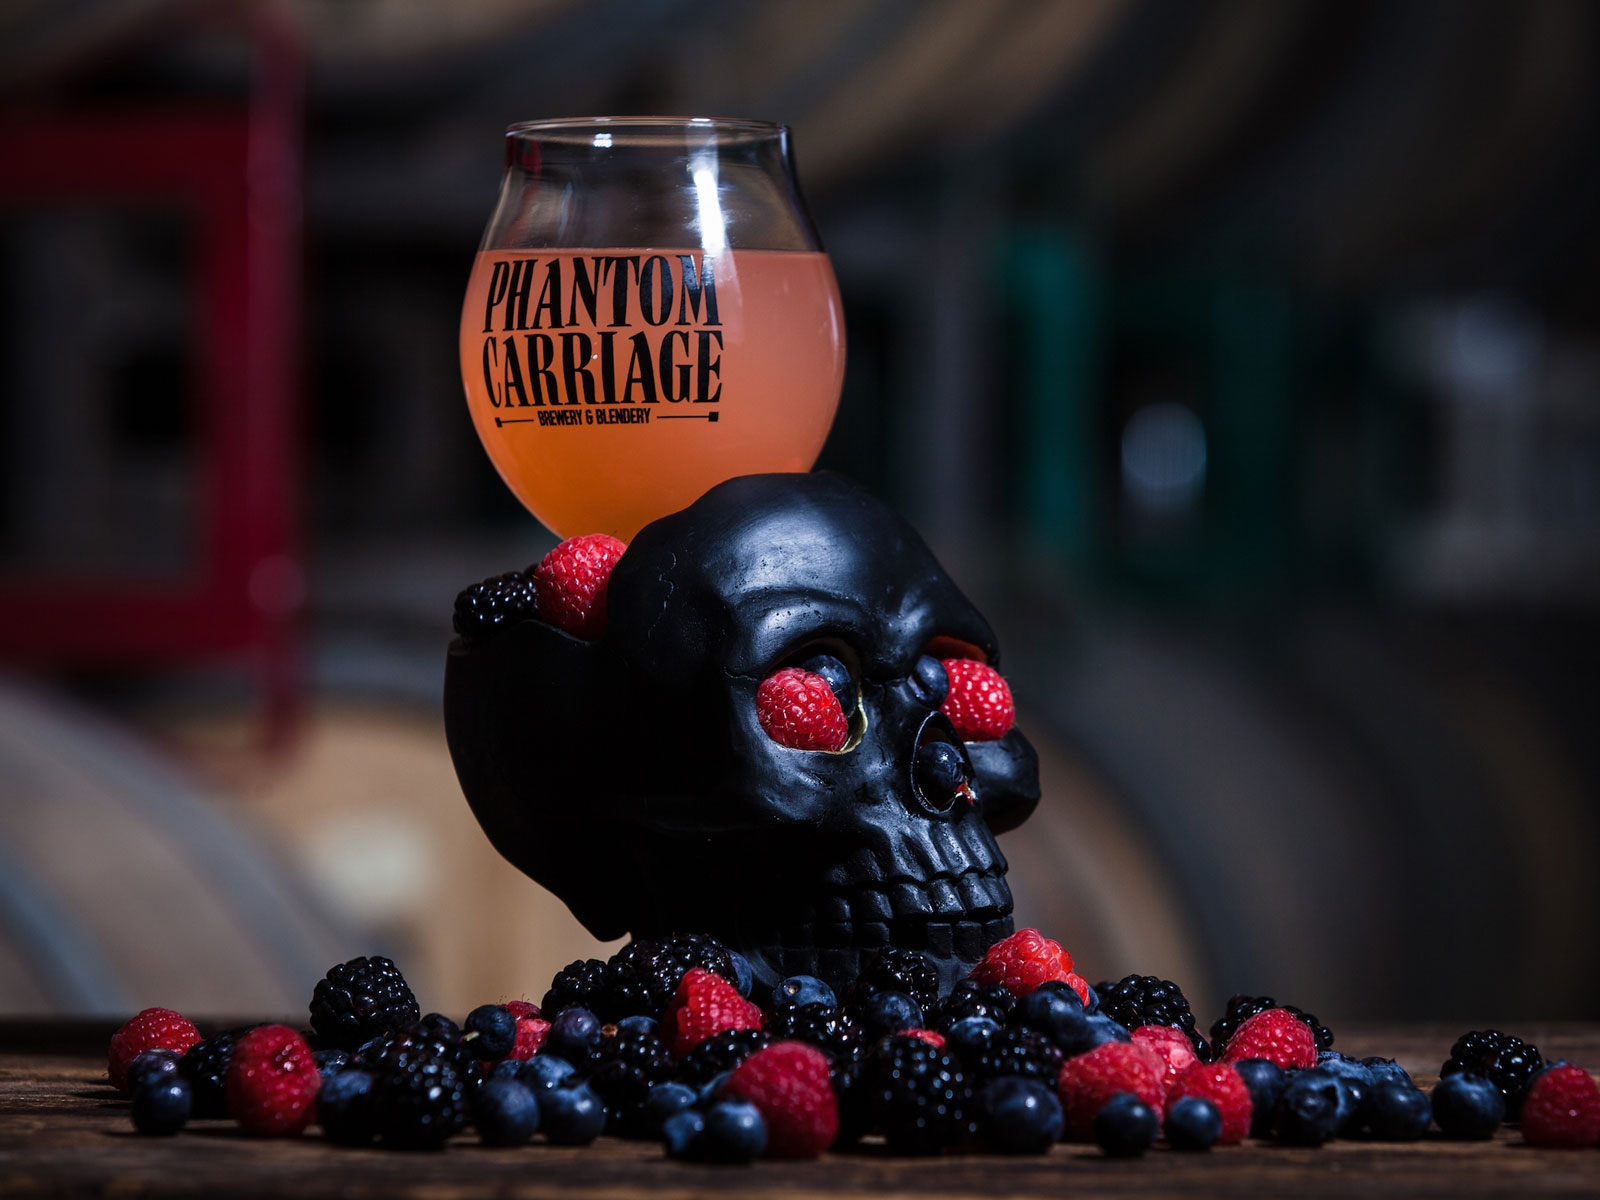 Phantom Carriage Brewery